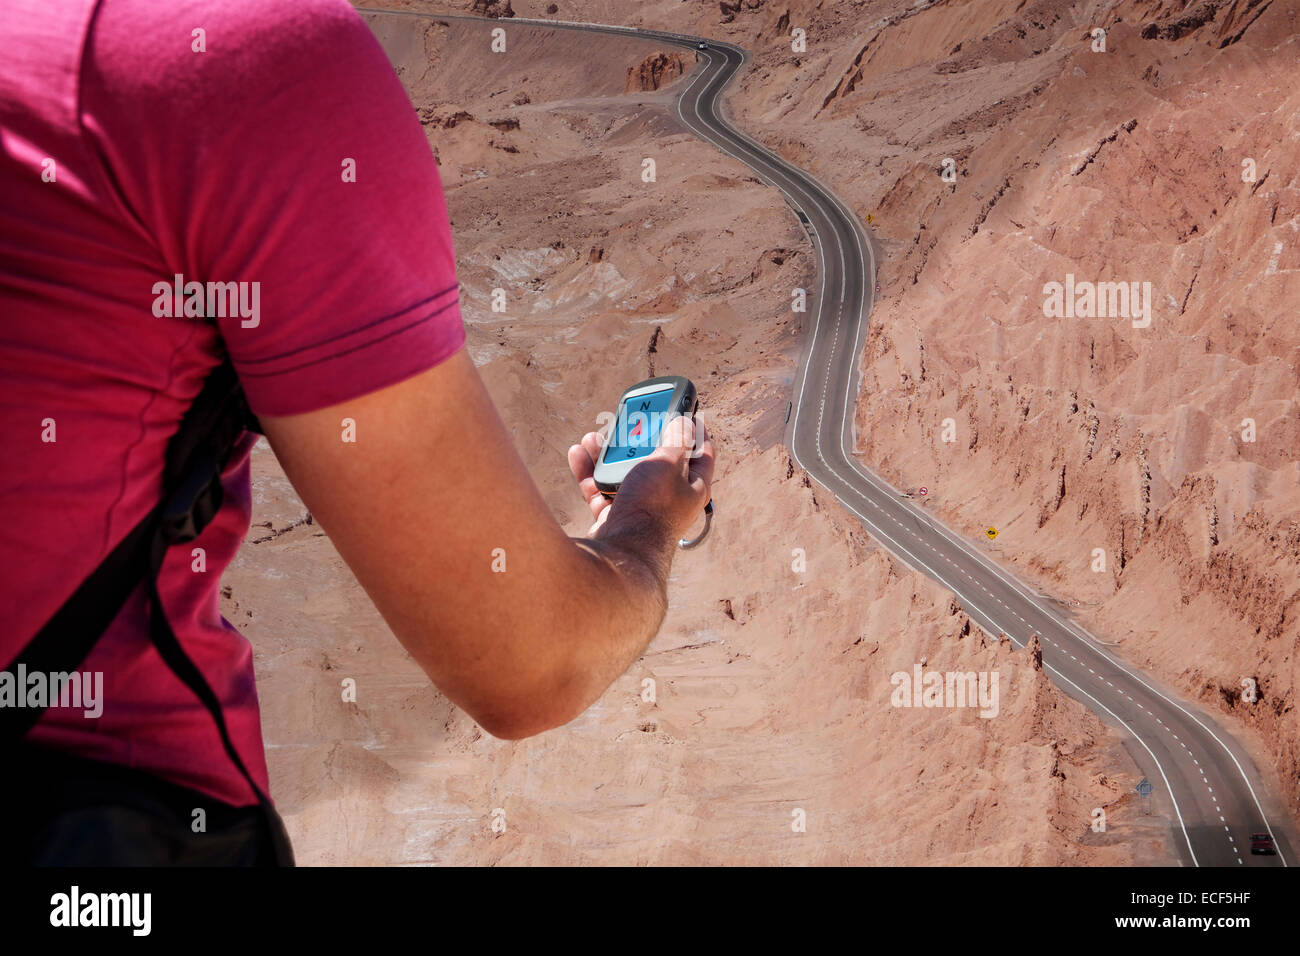 Person navigates with a gps in the hand - Stock Image